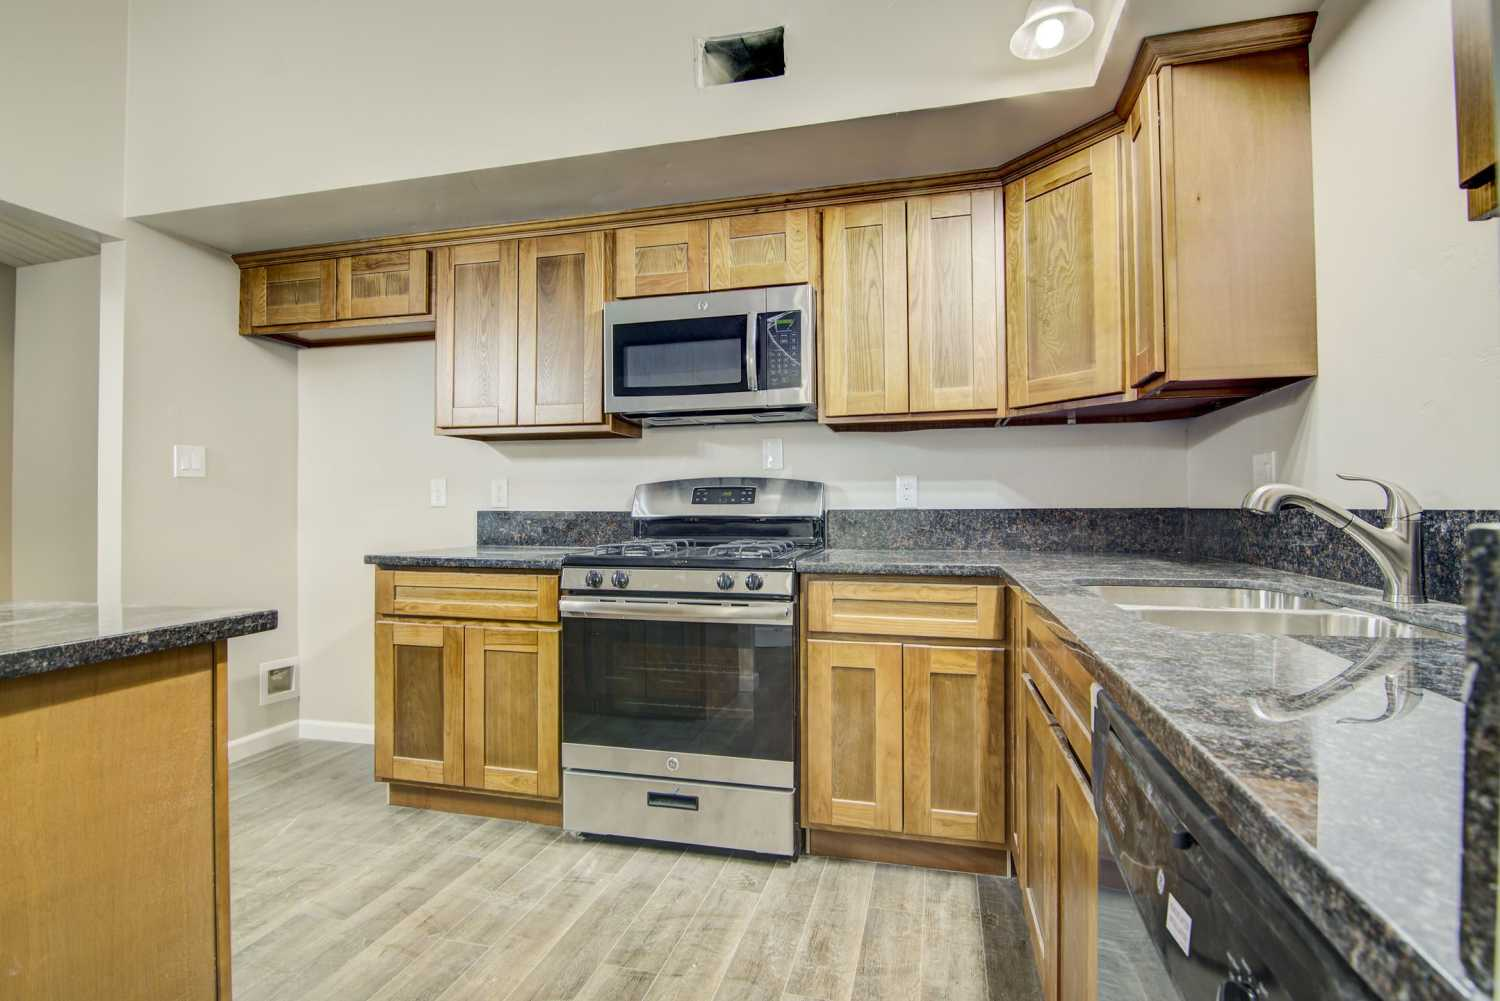 What Is The Best Kitchen Countertop Material? Is It Corian, Granite, or Quartz?